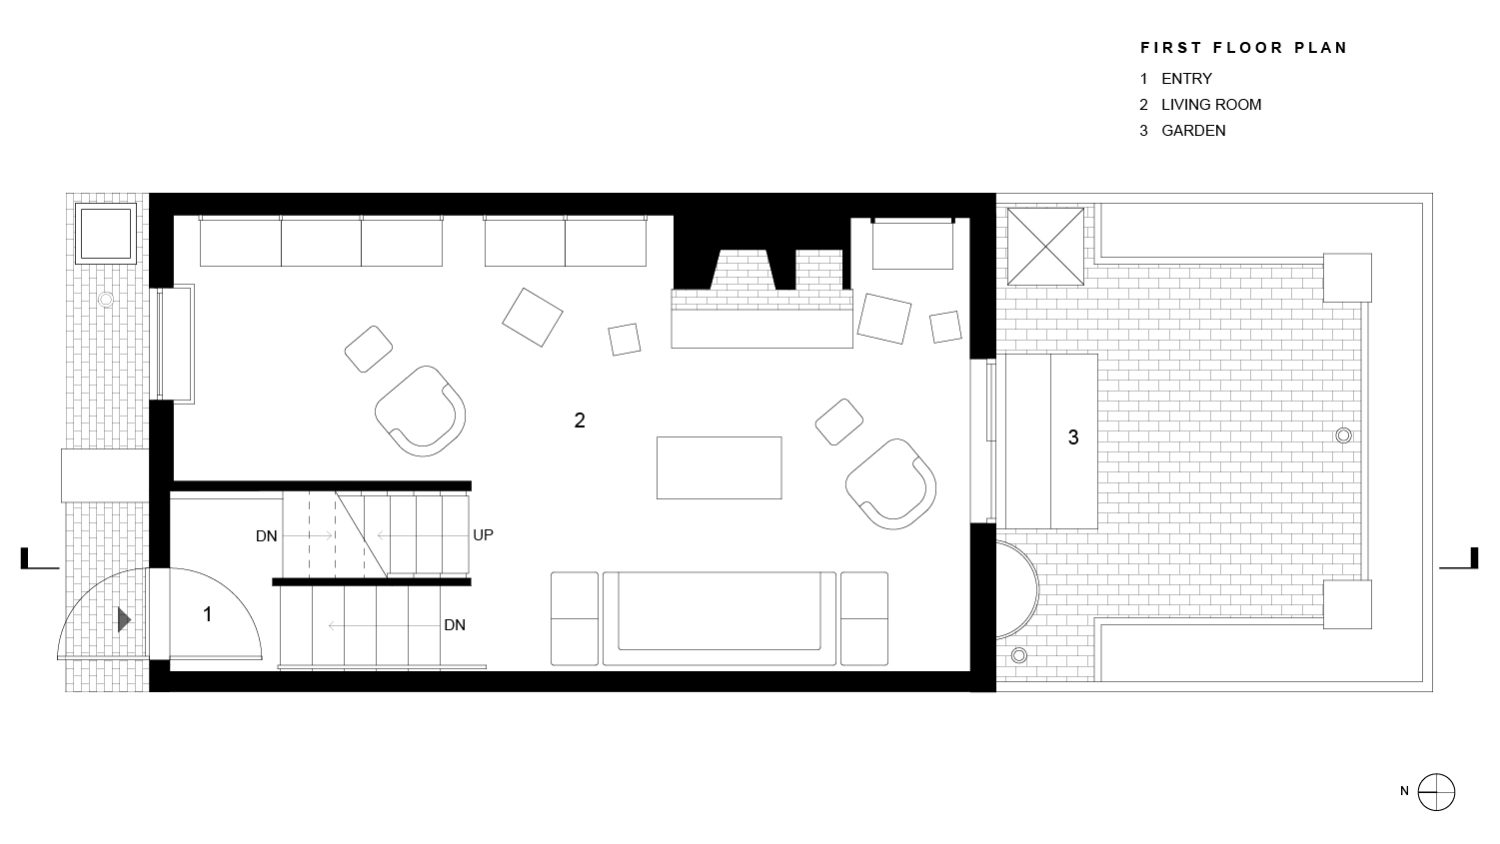 wright-residence-first-floor-plan